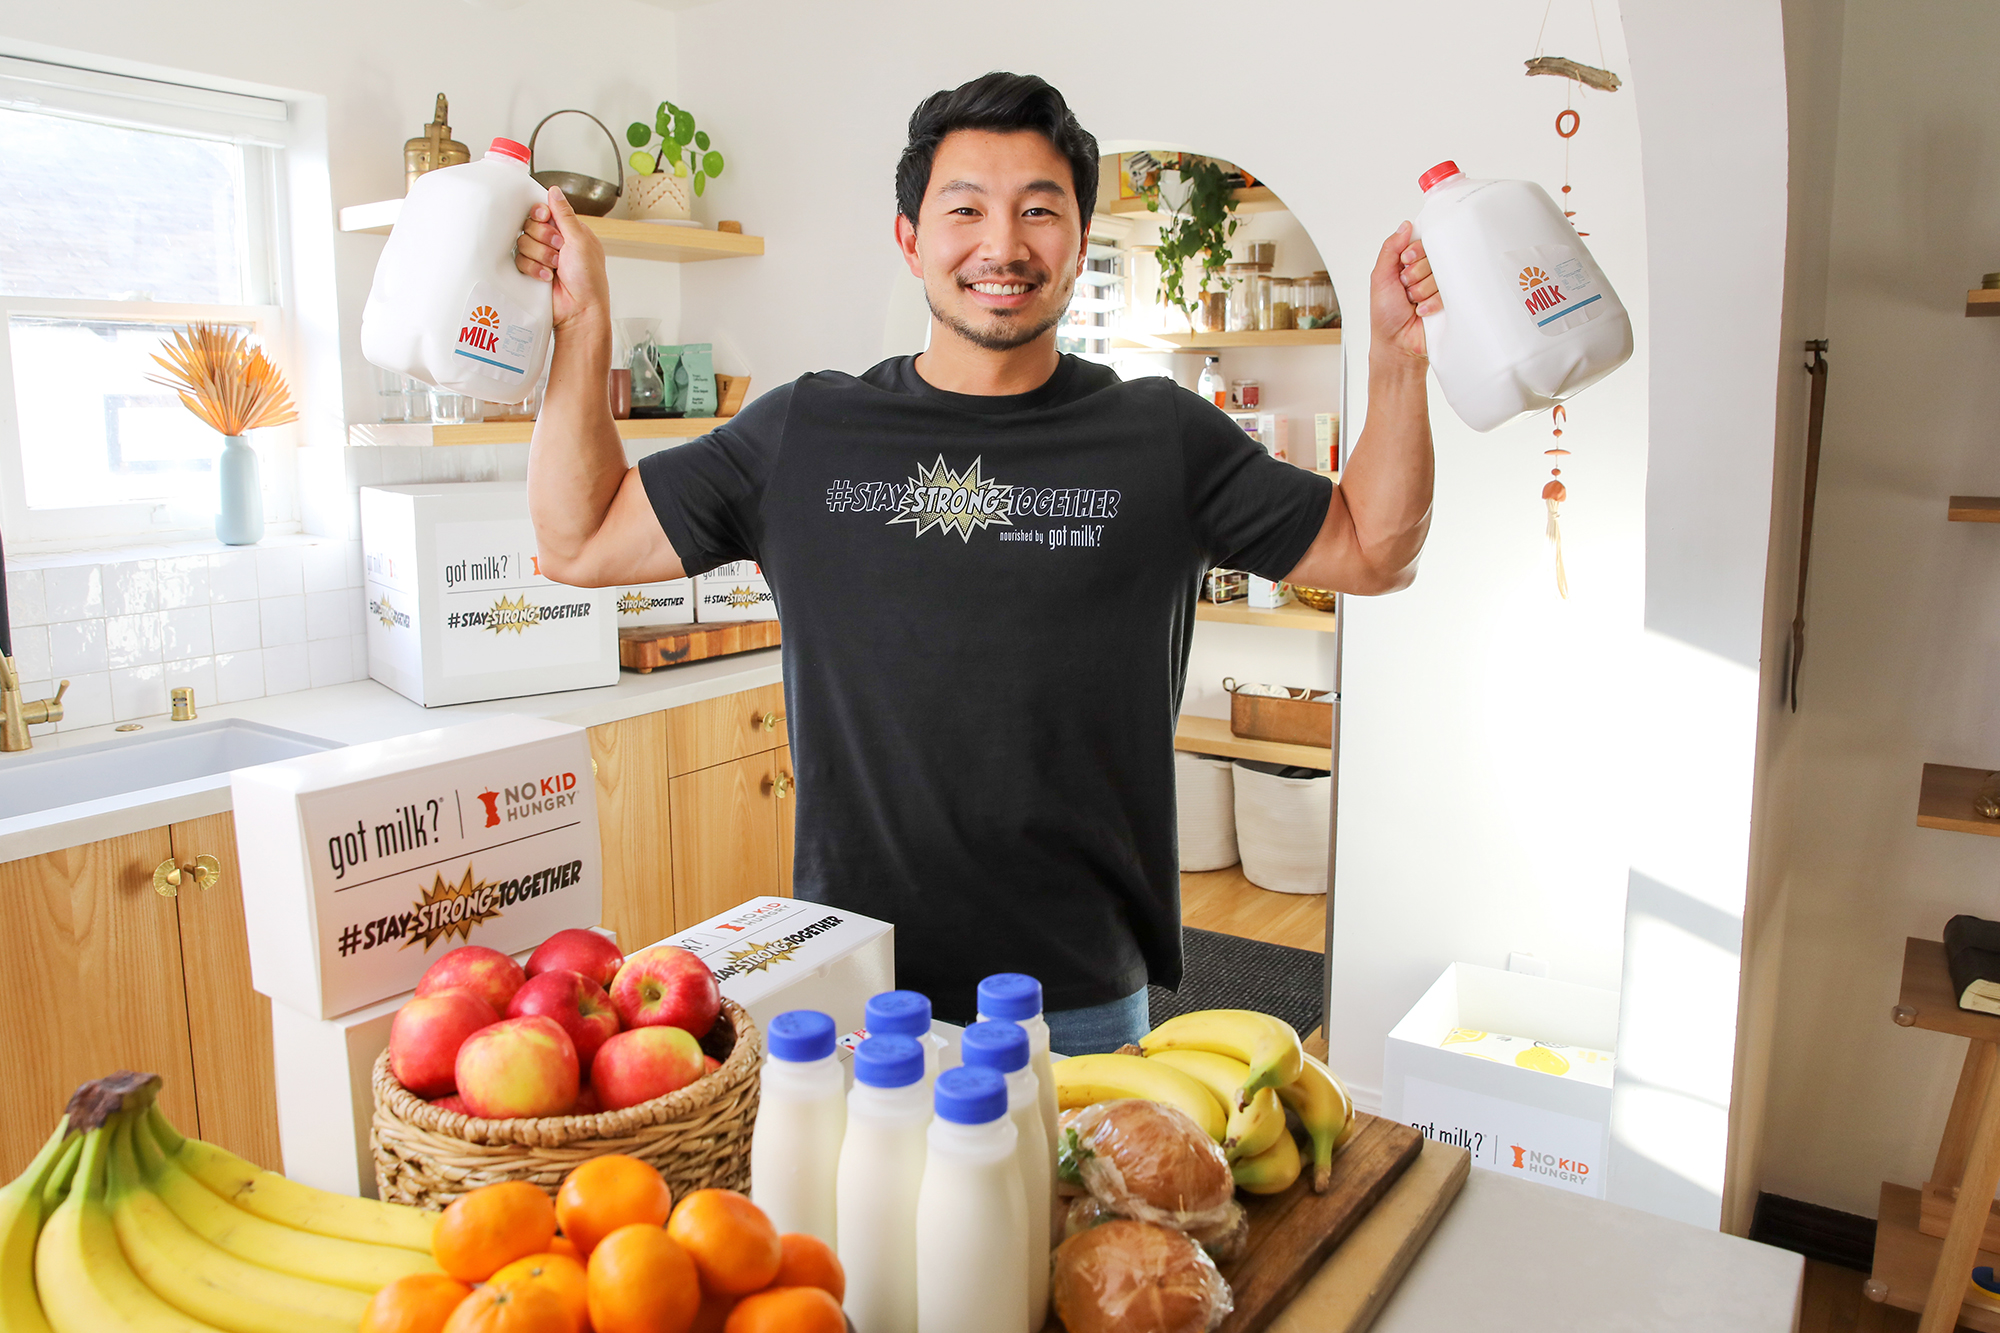 Marvel 'Shang Chi' Super Hero, Simu Liu, flexed his muscles alongside the creators of 'got milk?' during production for the #StayStrongTogether challenge